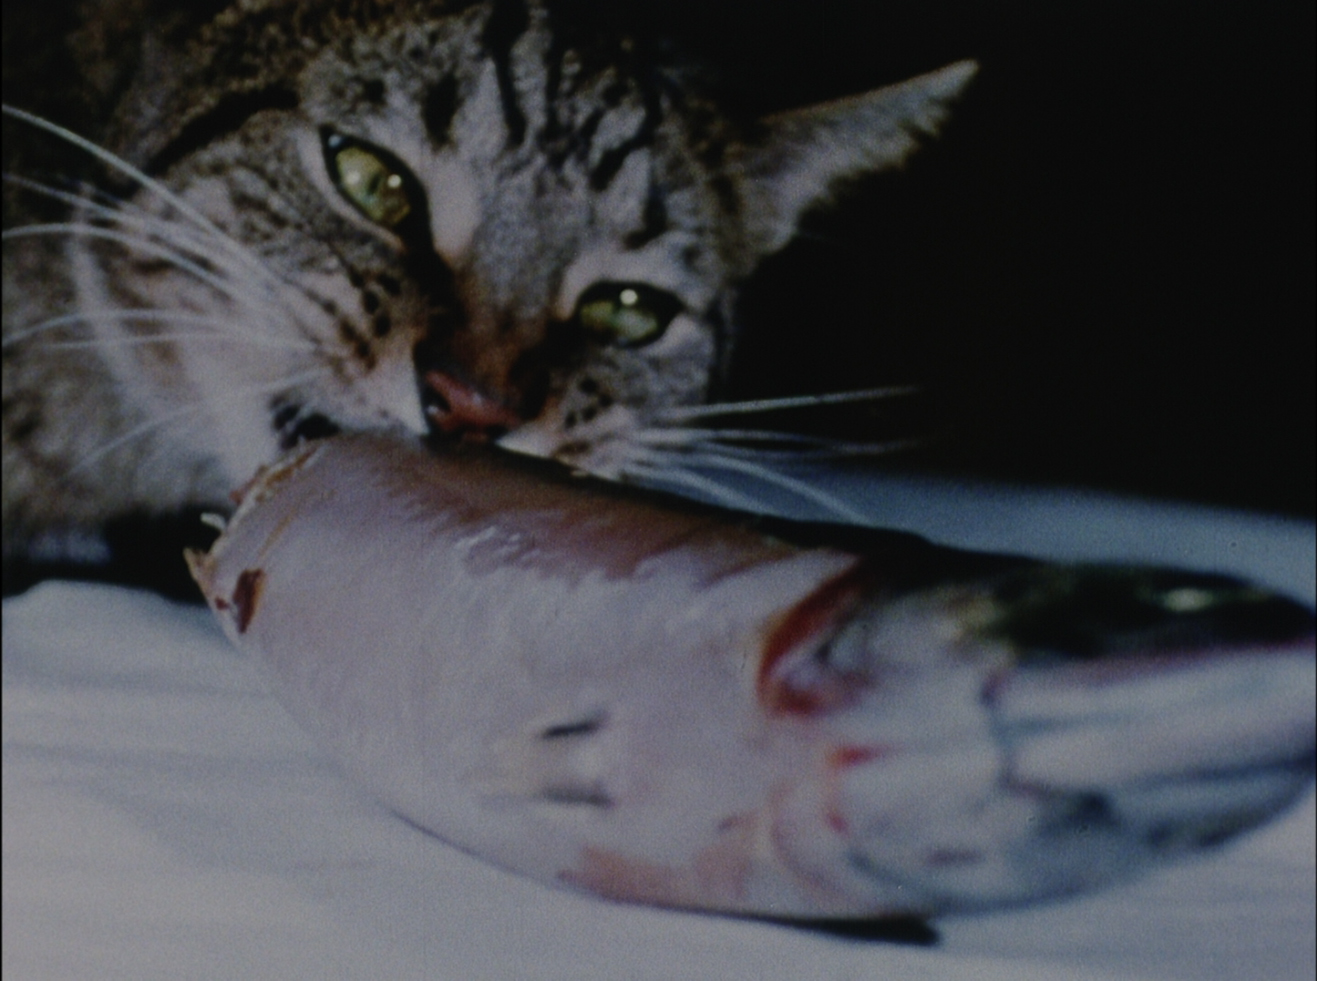 Cat Food - 1968, Joyce Wieland - a cat eating a fish